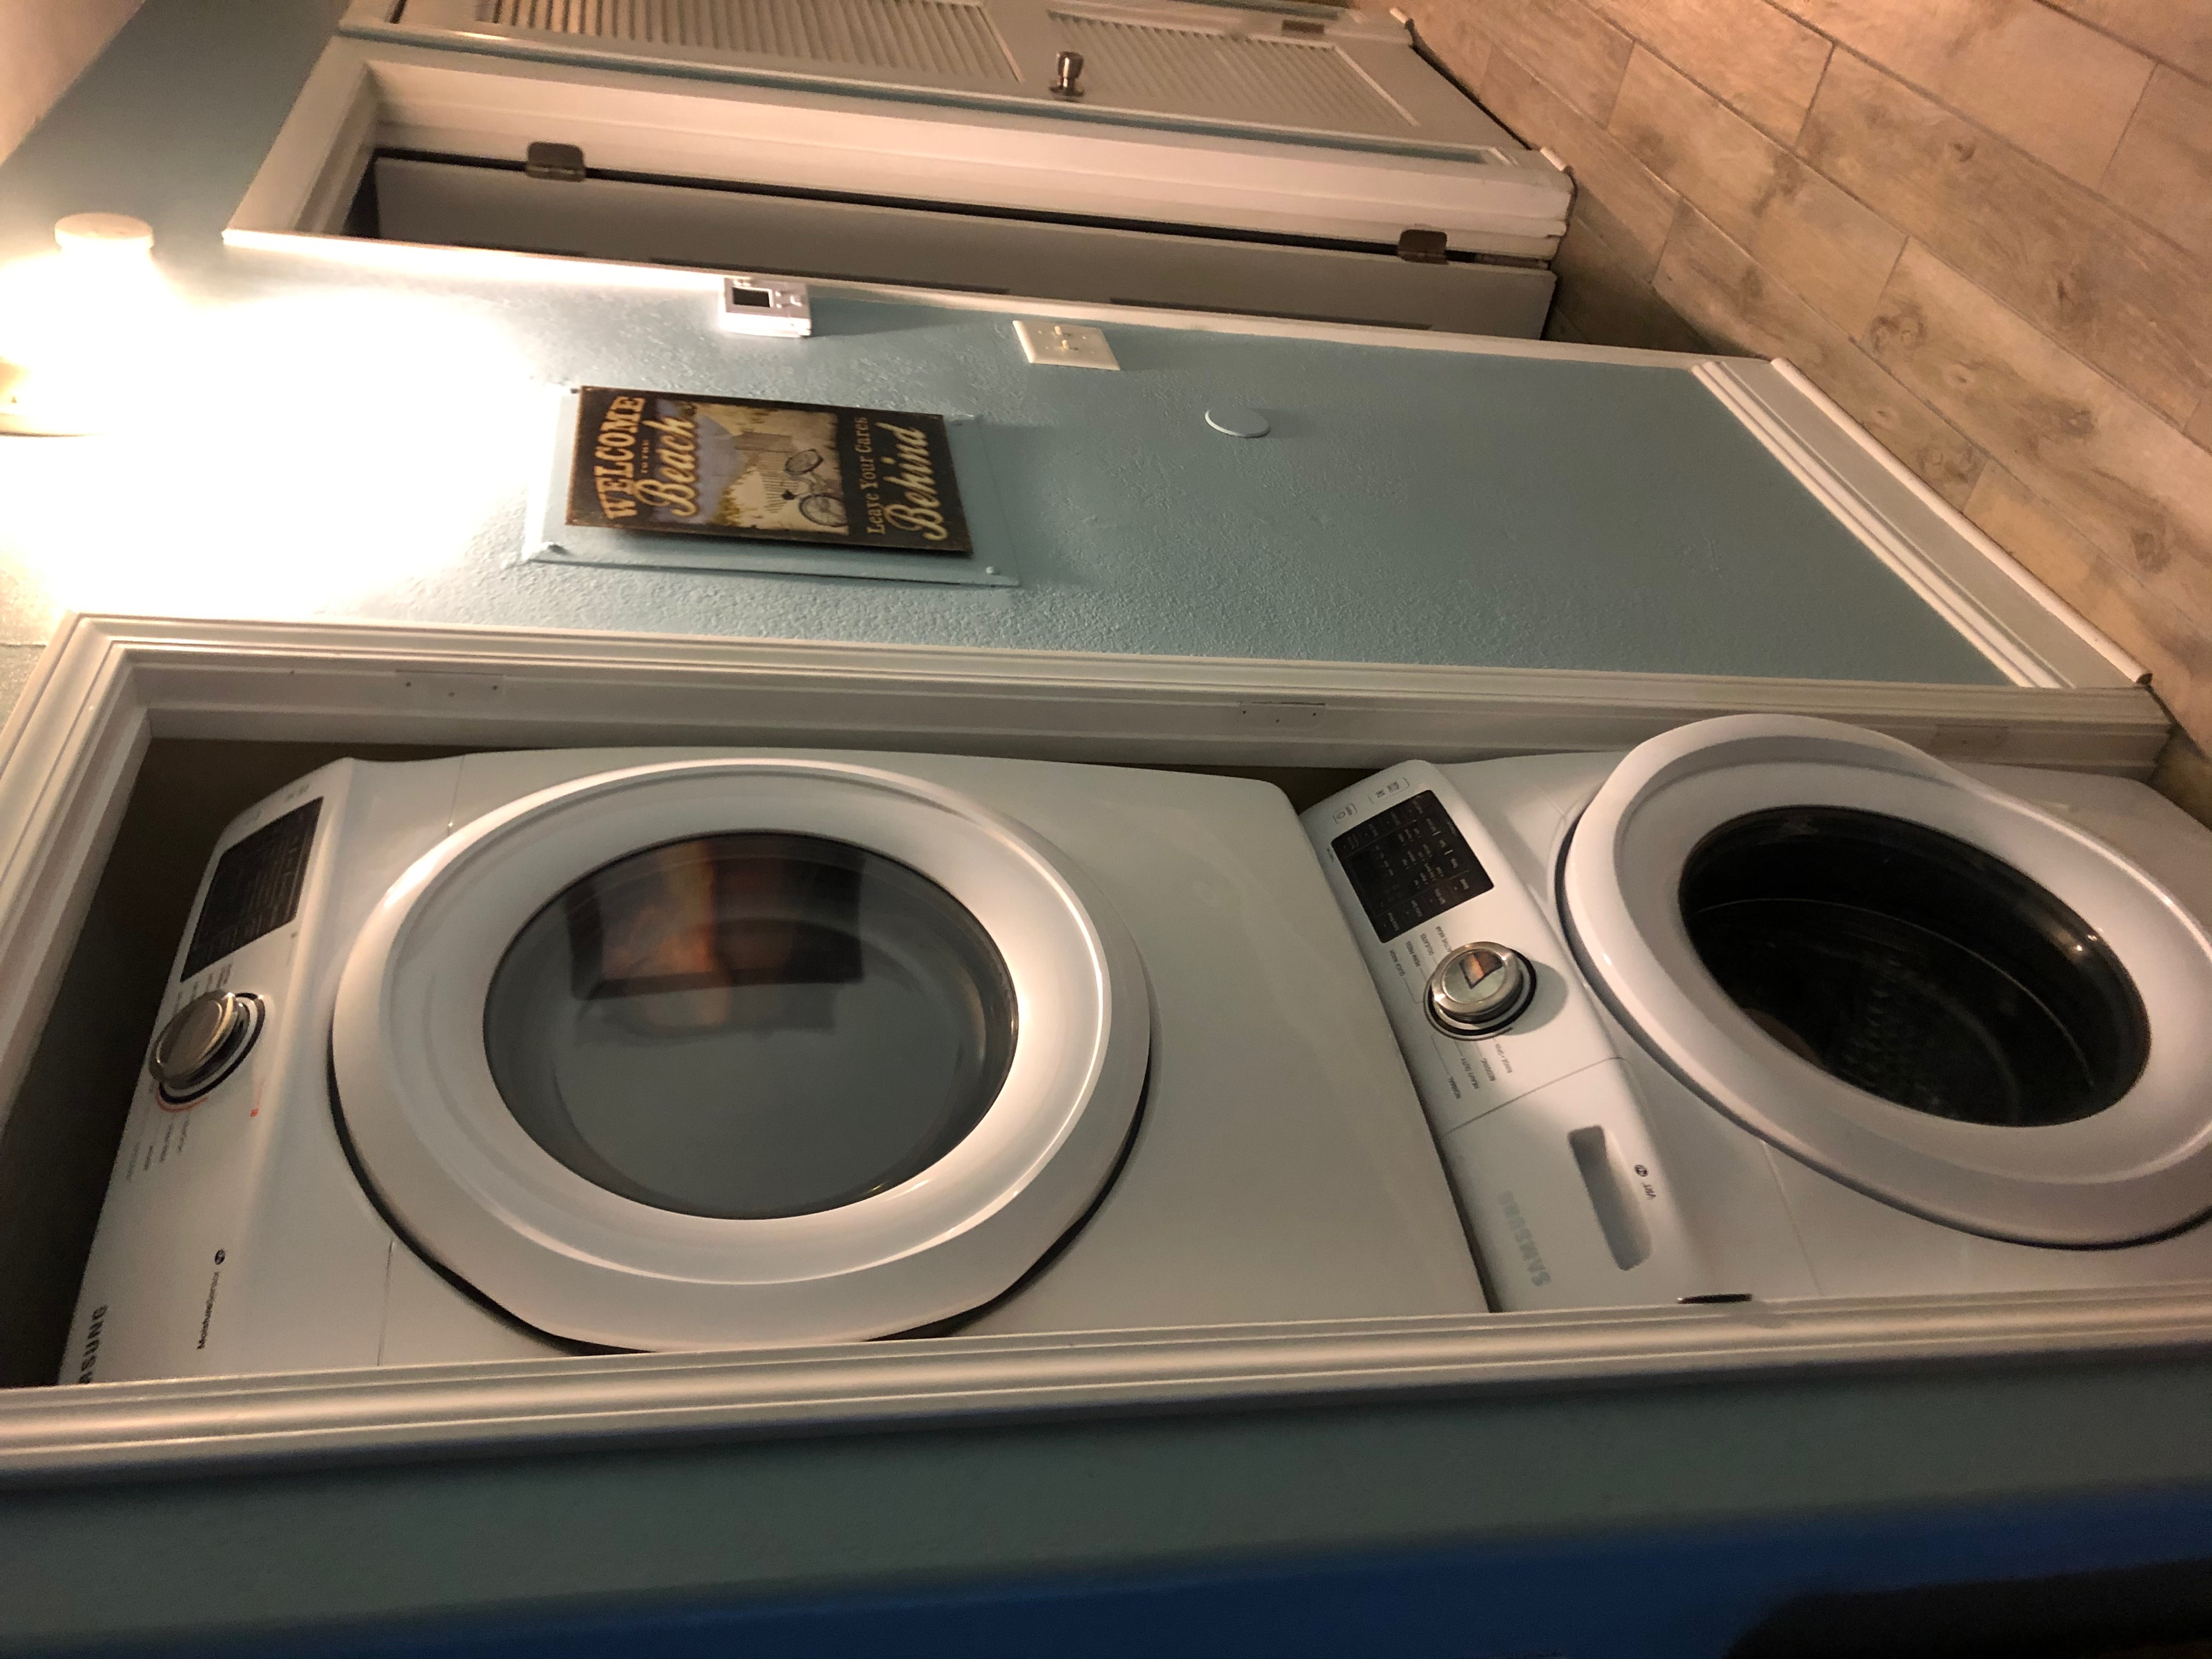 New front load full size washer and dryer